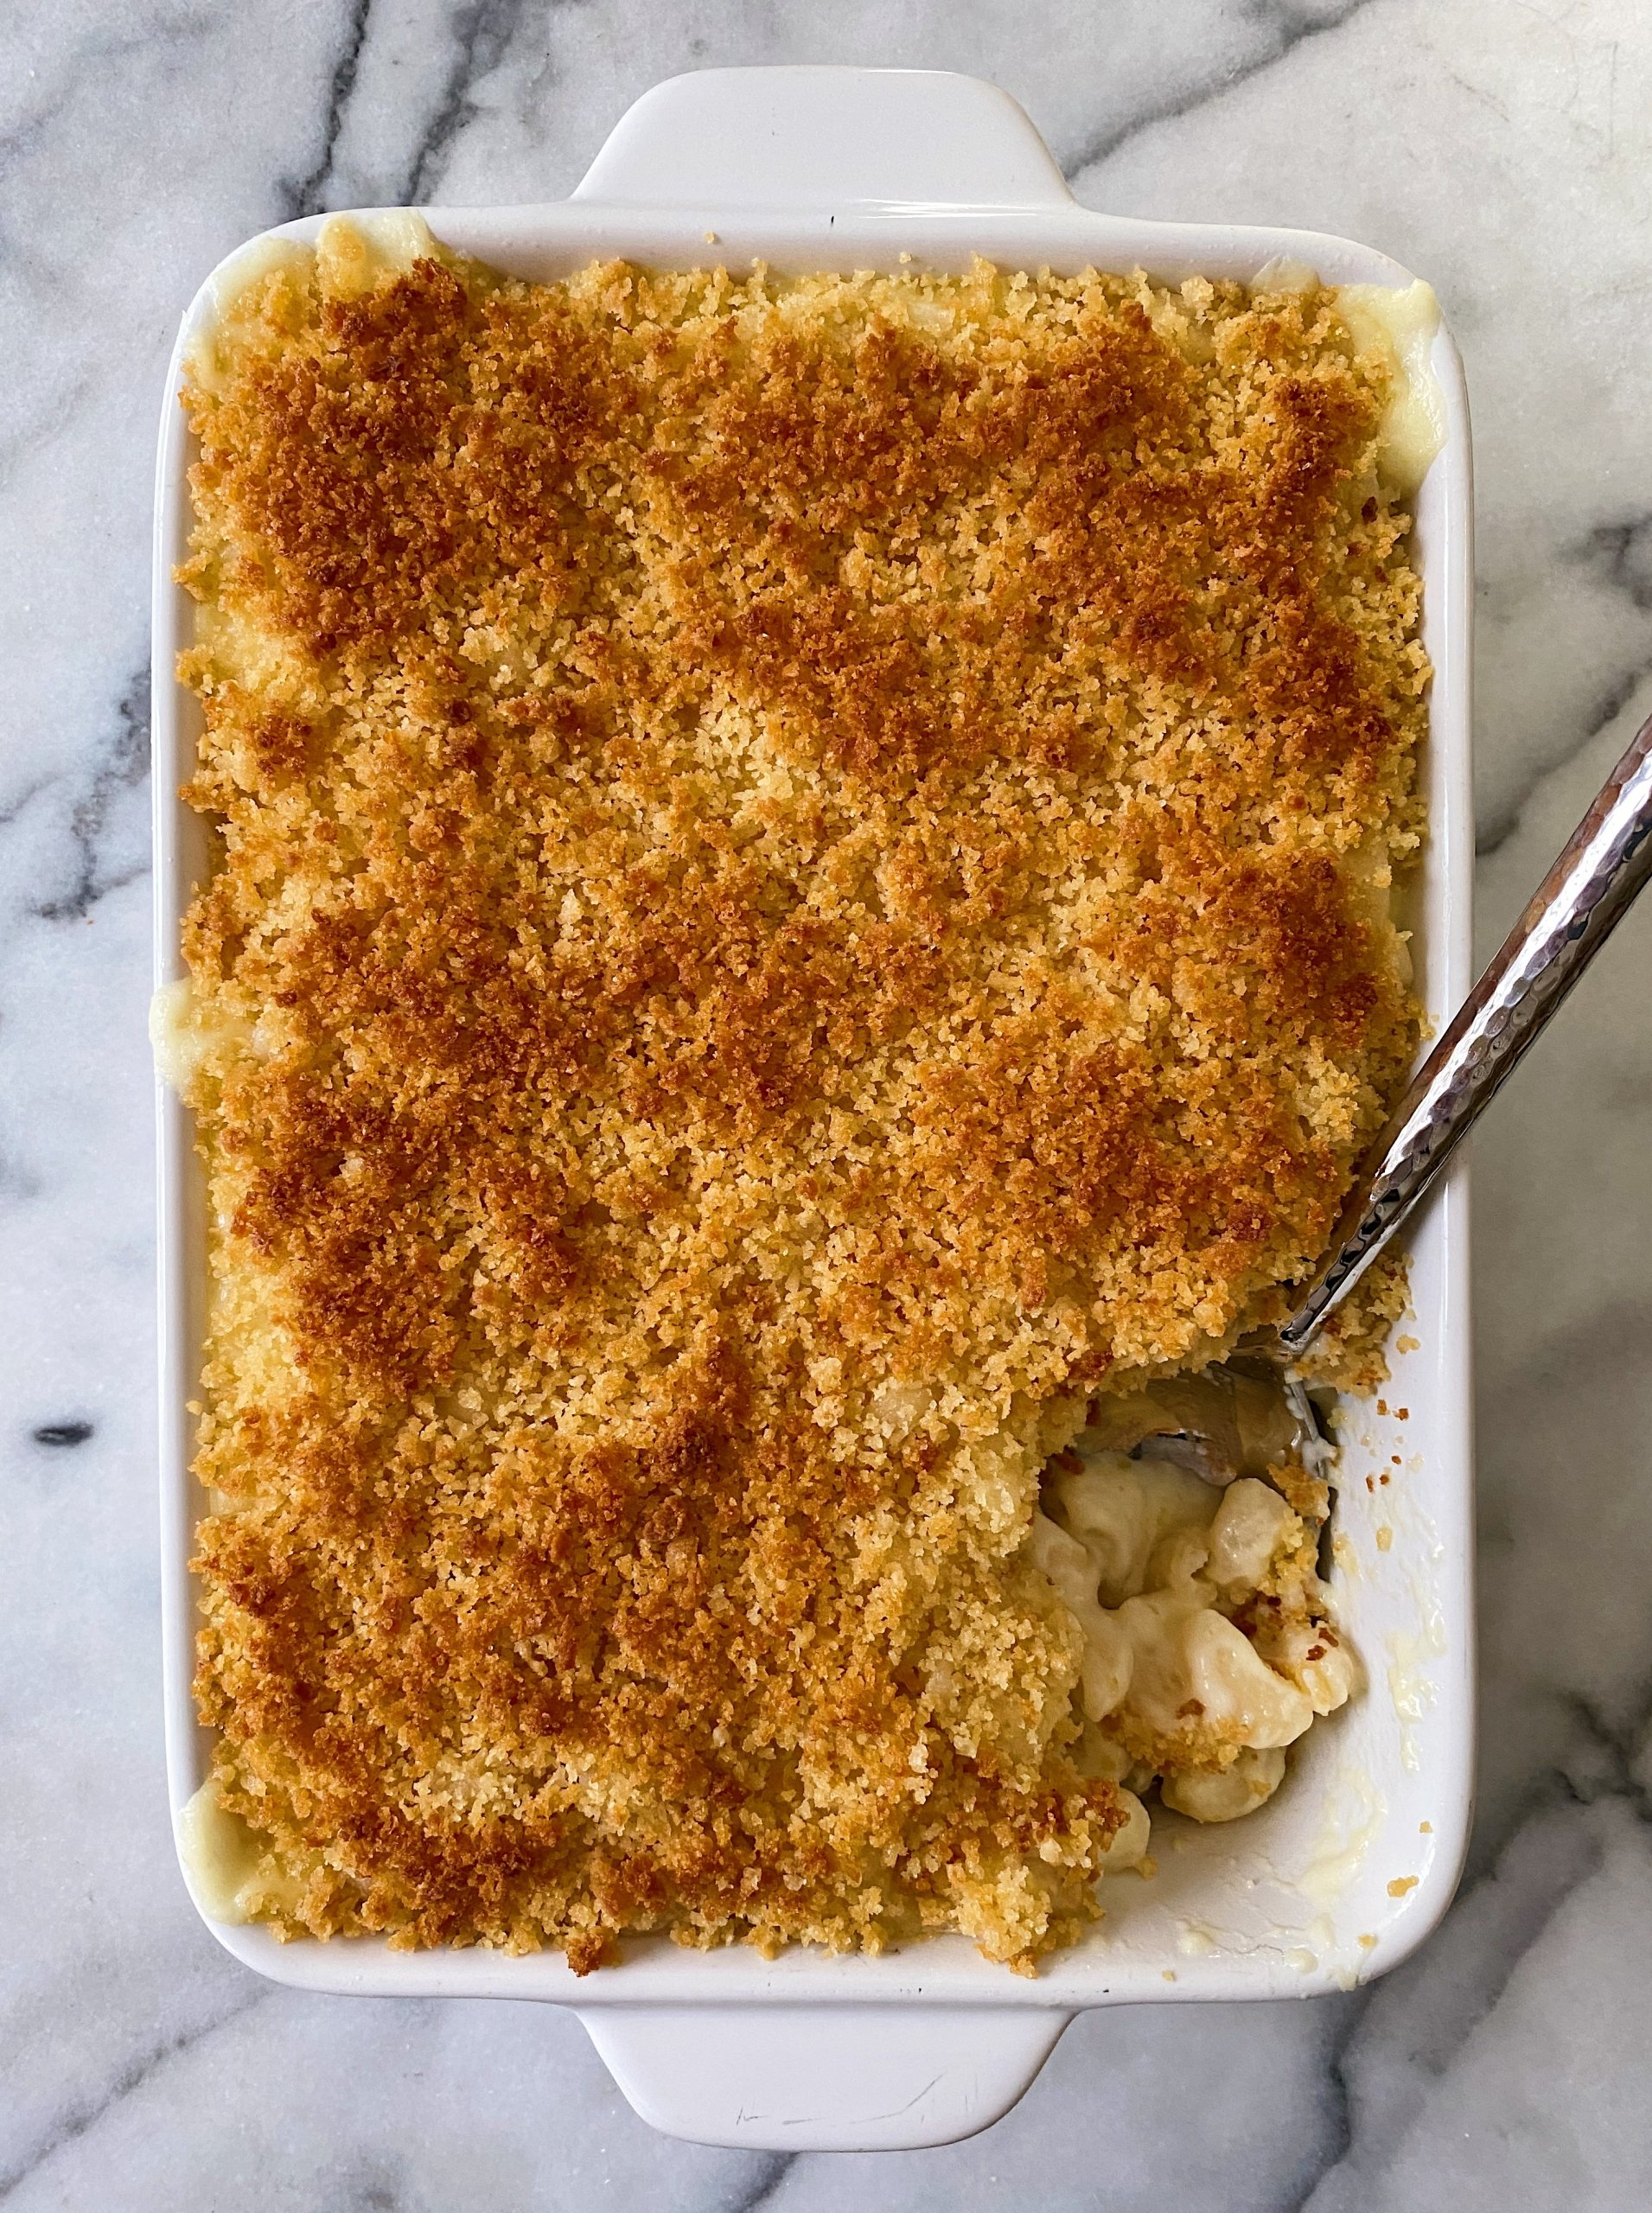 easy homemade mac and cheese gluten free #glutenfreerecipes www.healthygffamily.com